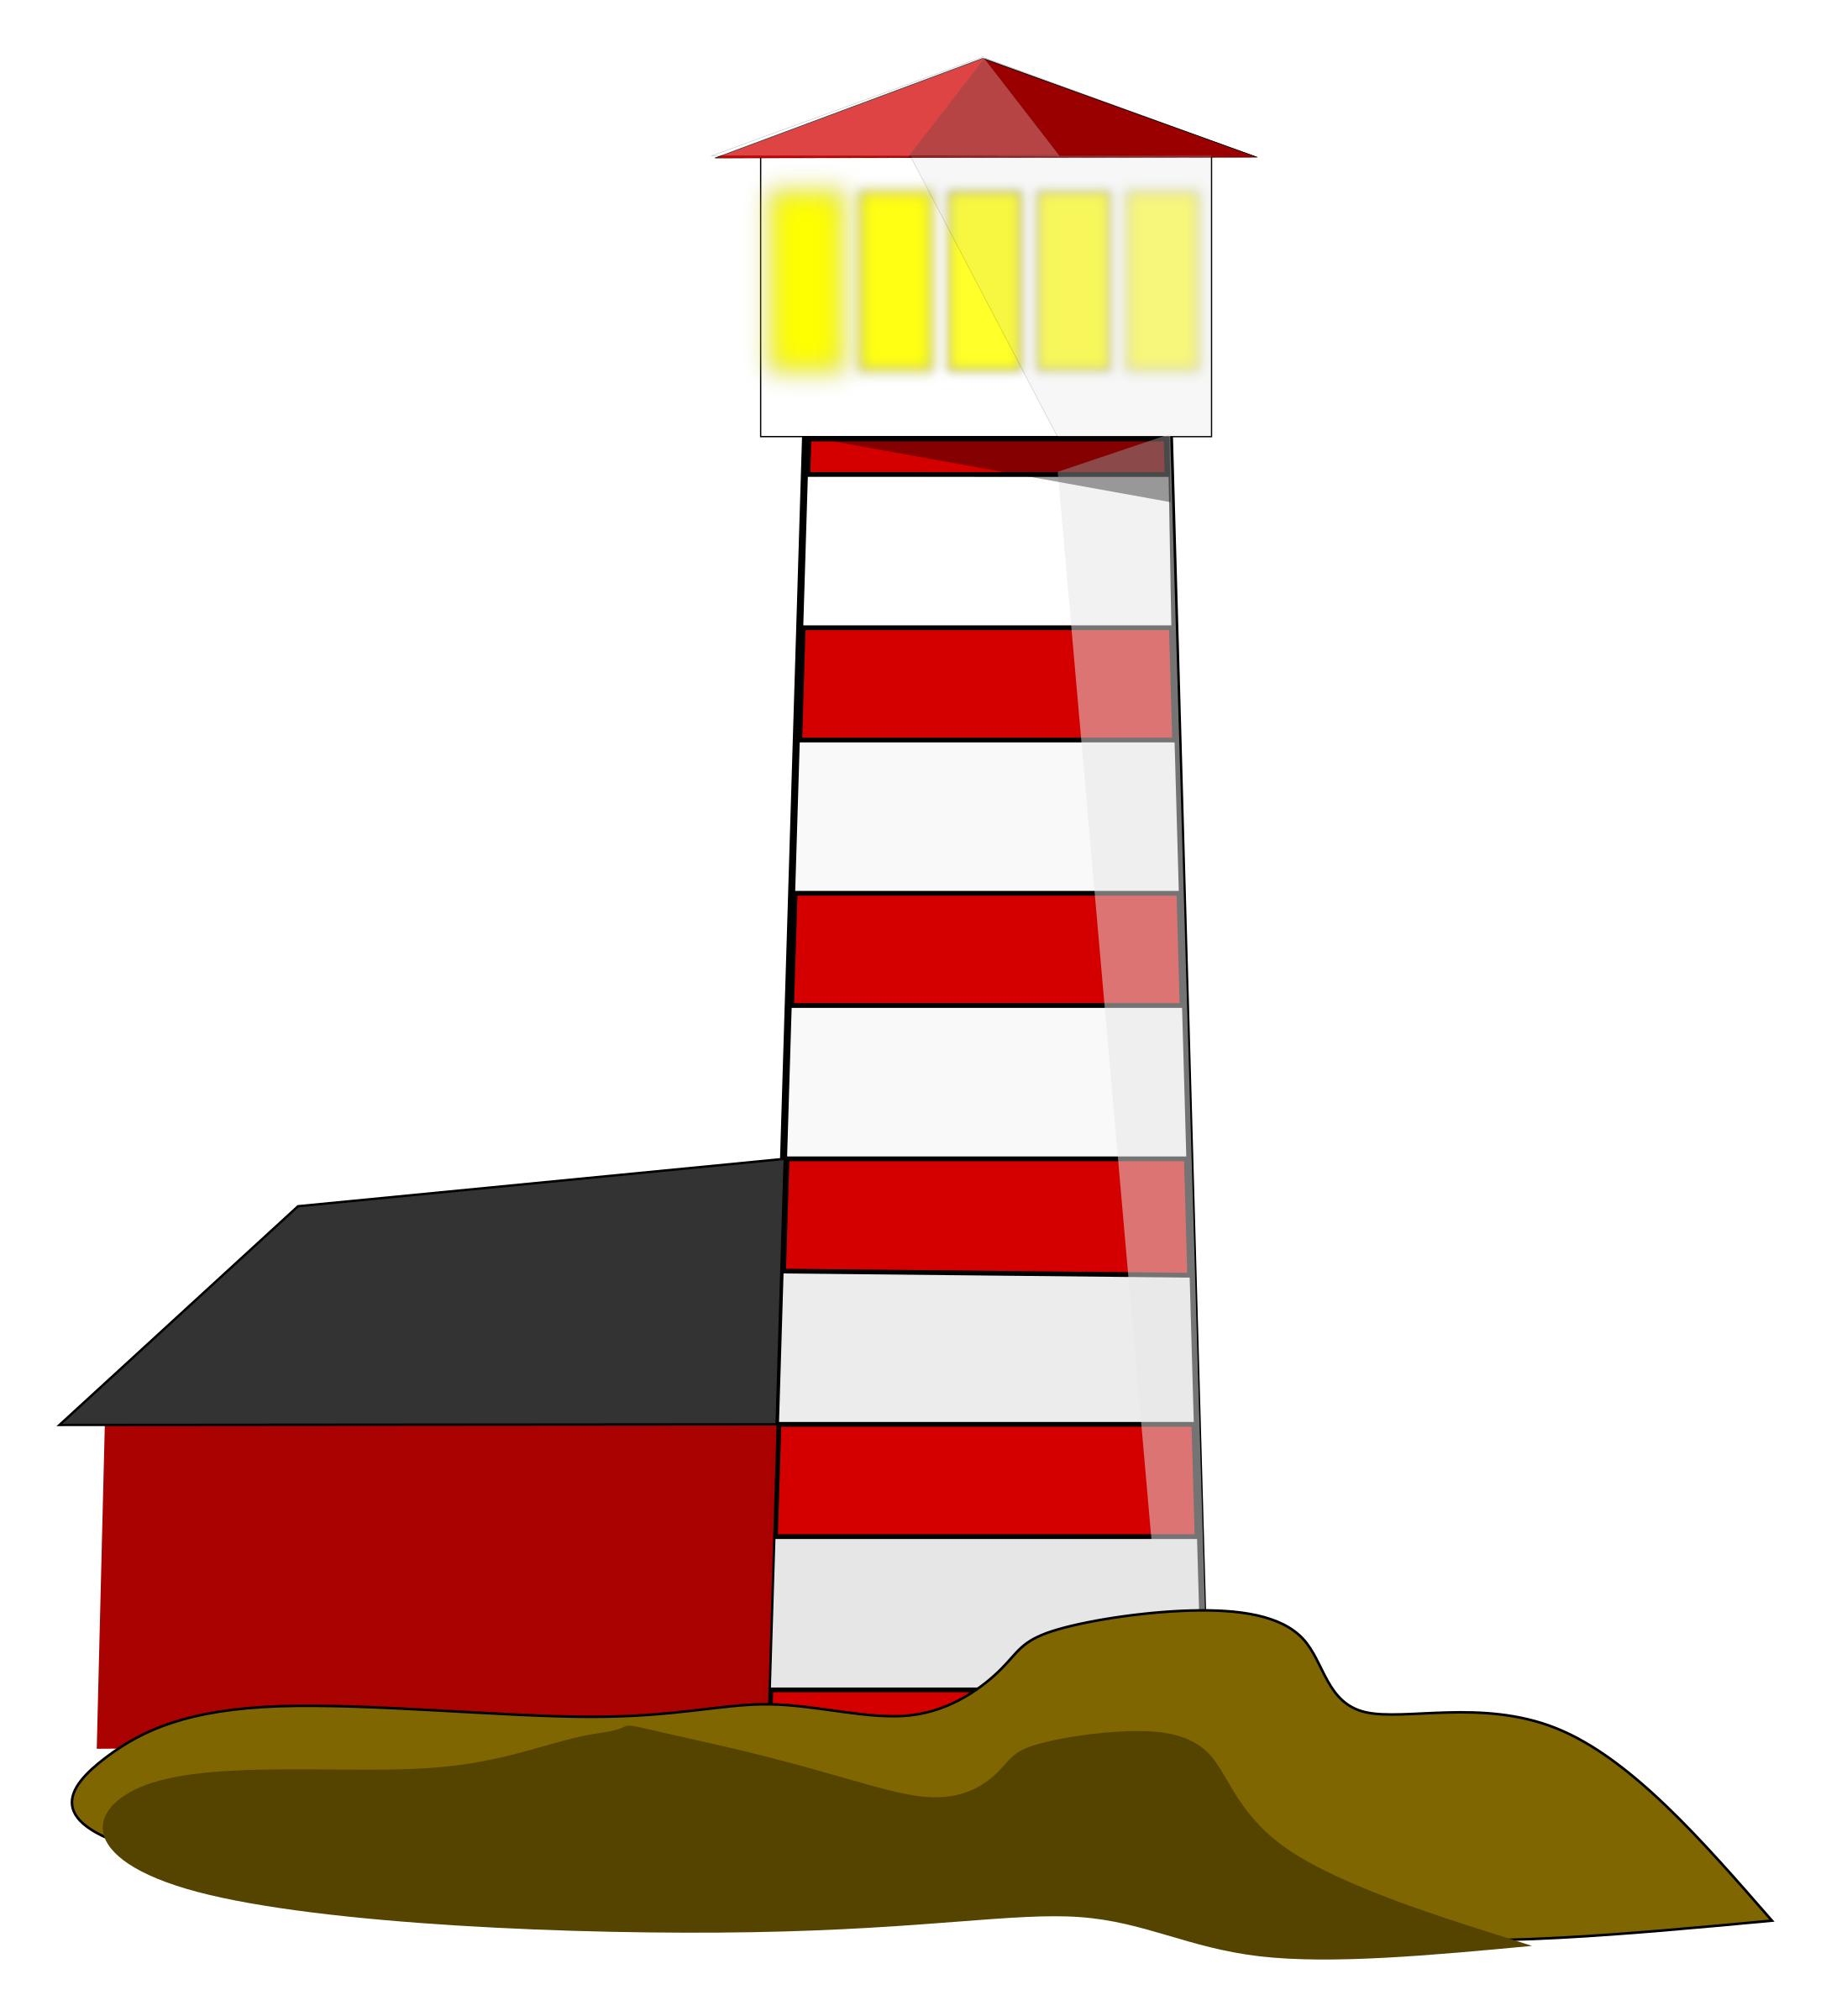 Light house clipart clipart library library Clipart - Lighthouse clipart library library